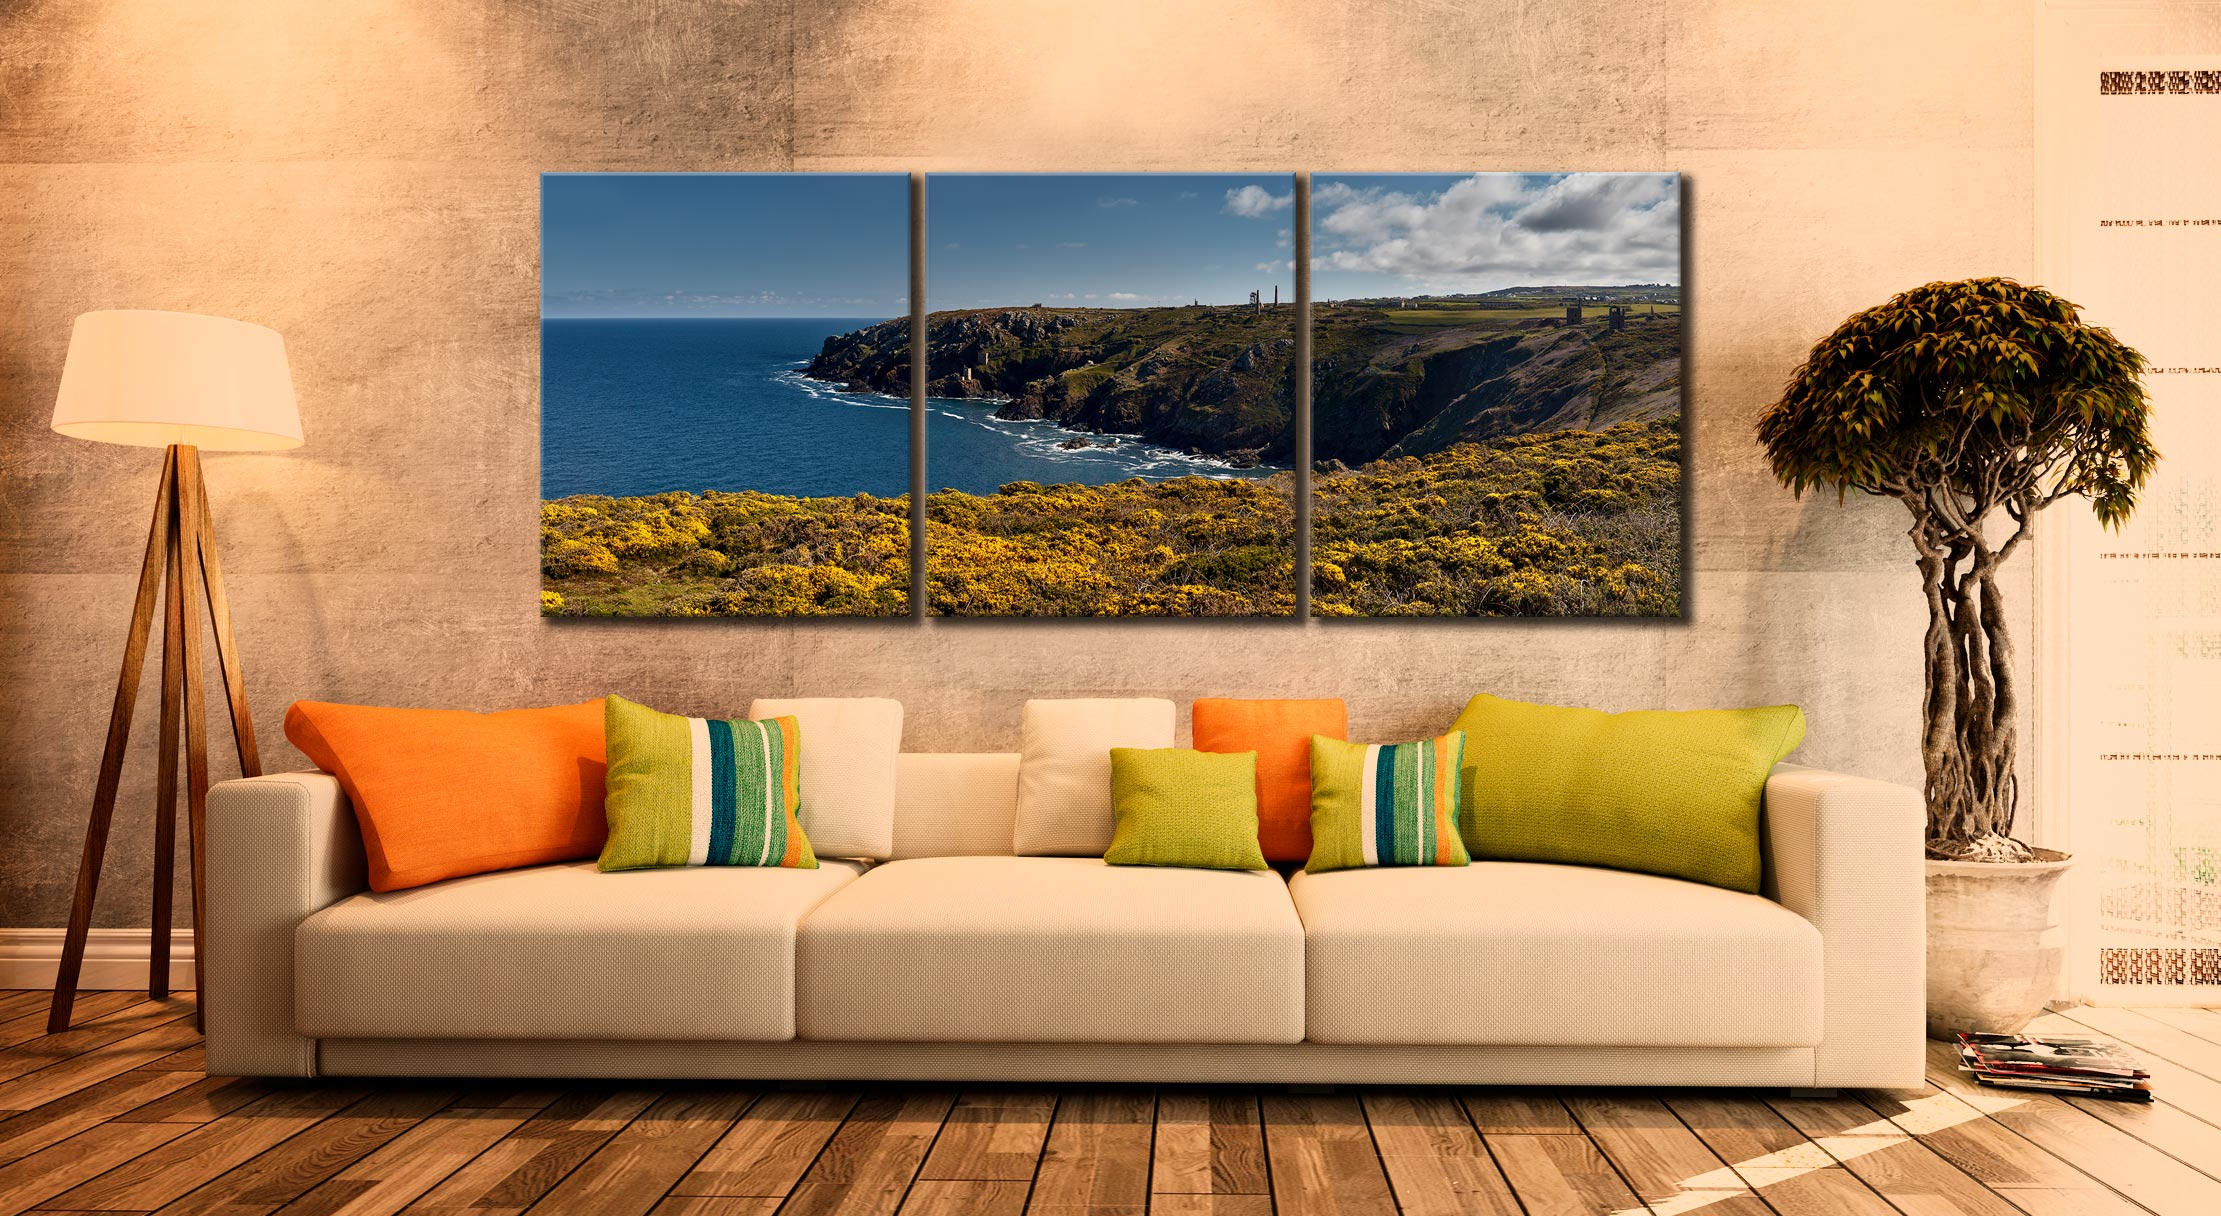 Botallack Mines Yellow Gorse - 3 Panel Canvas on Wall